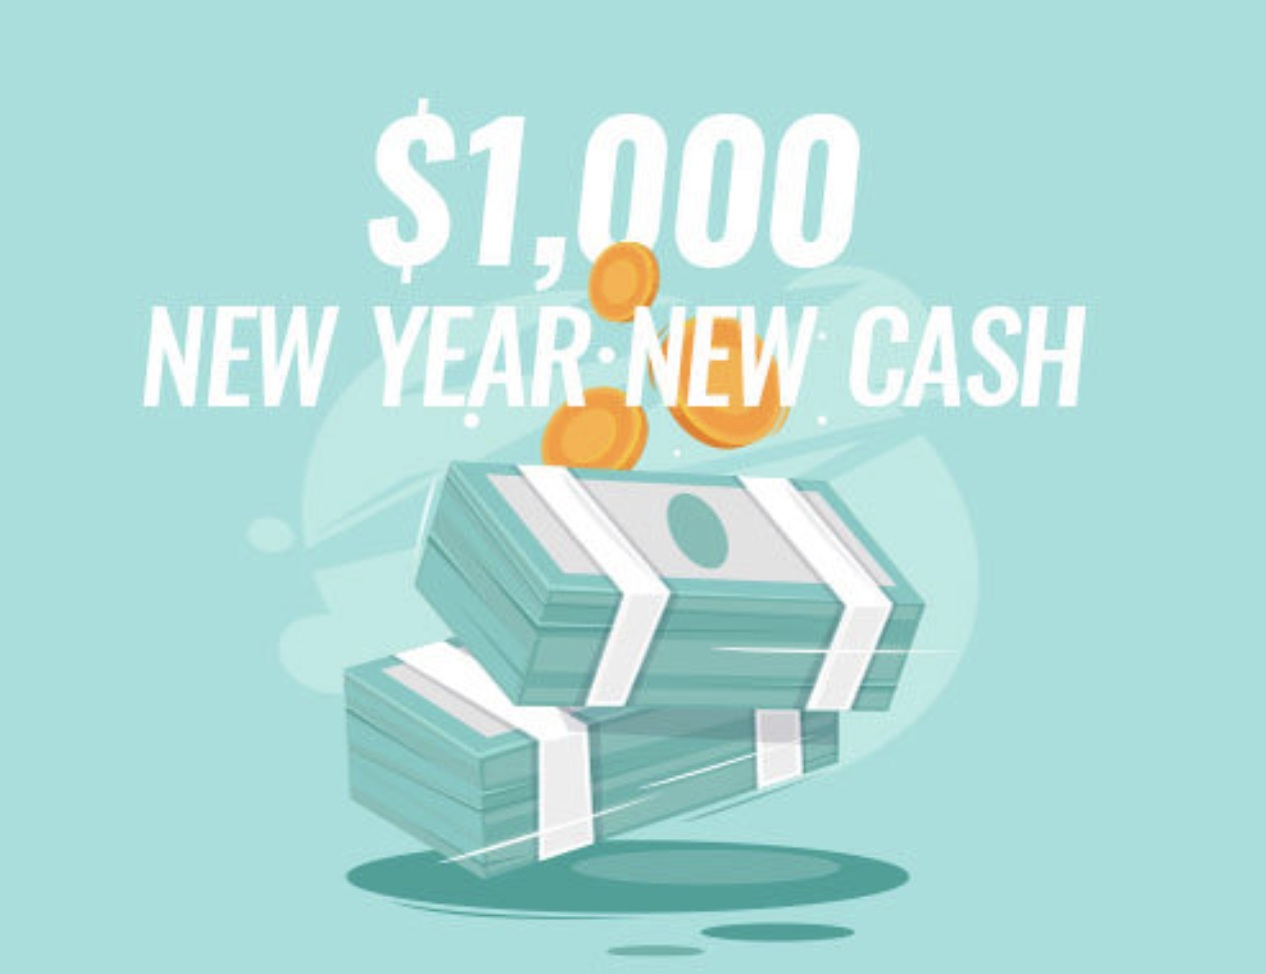 NEW YEAR, NEW CASH!